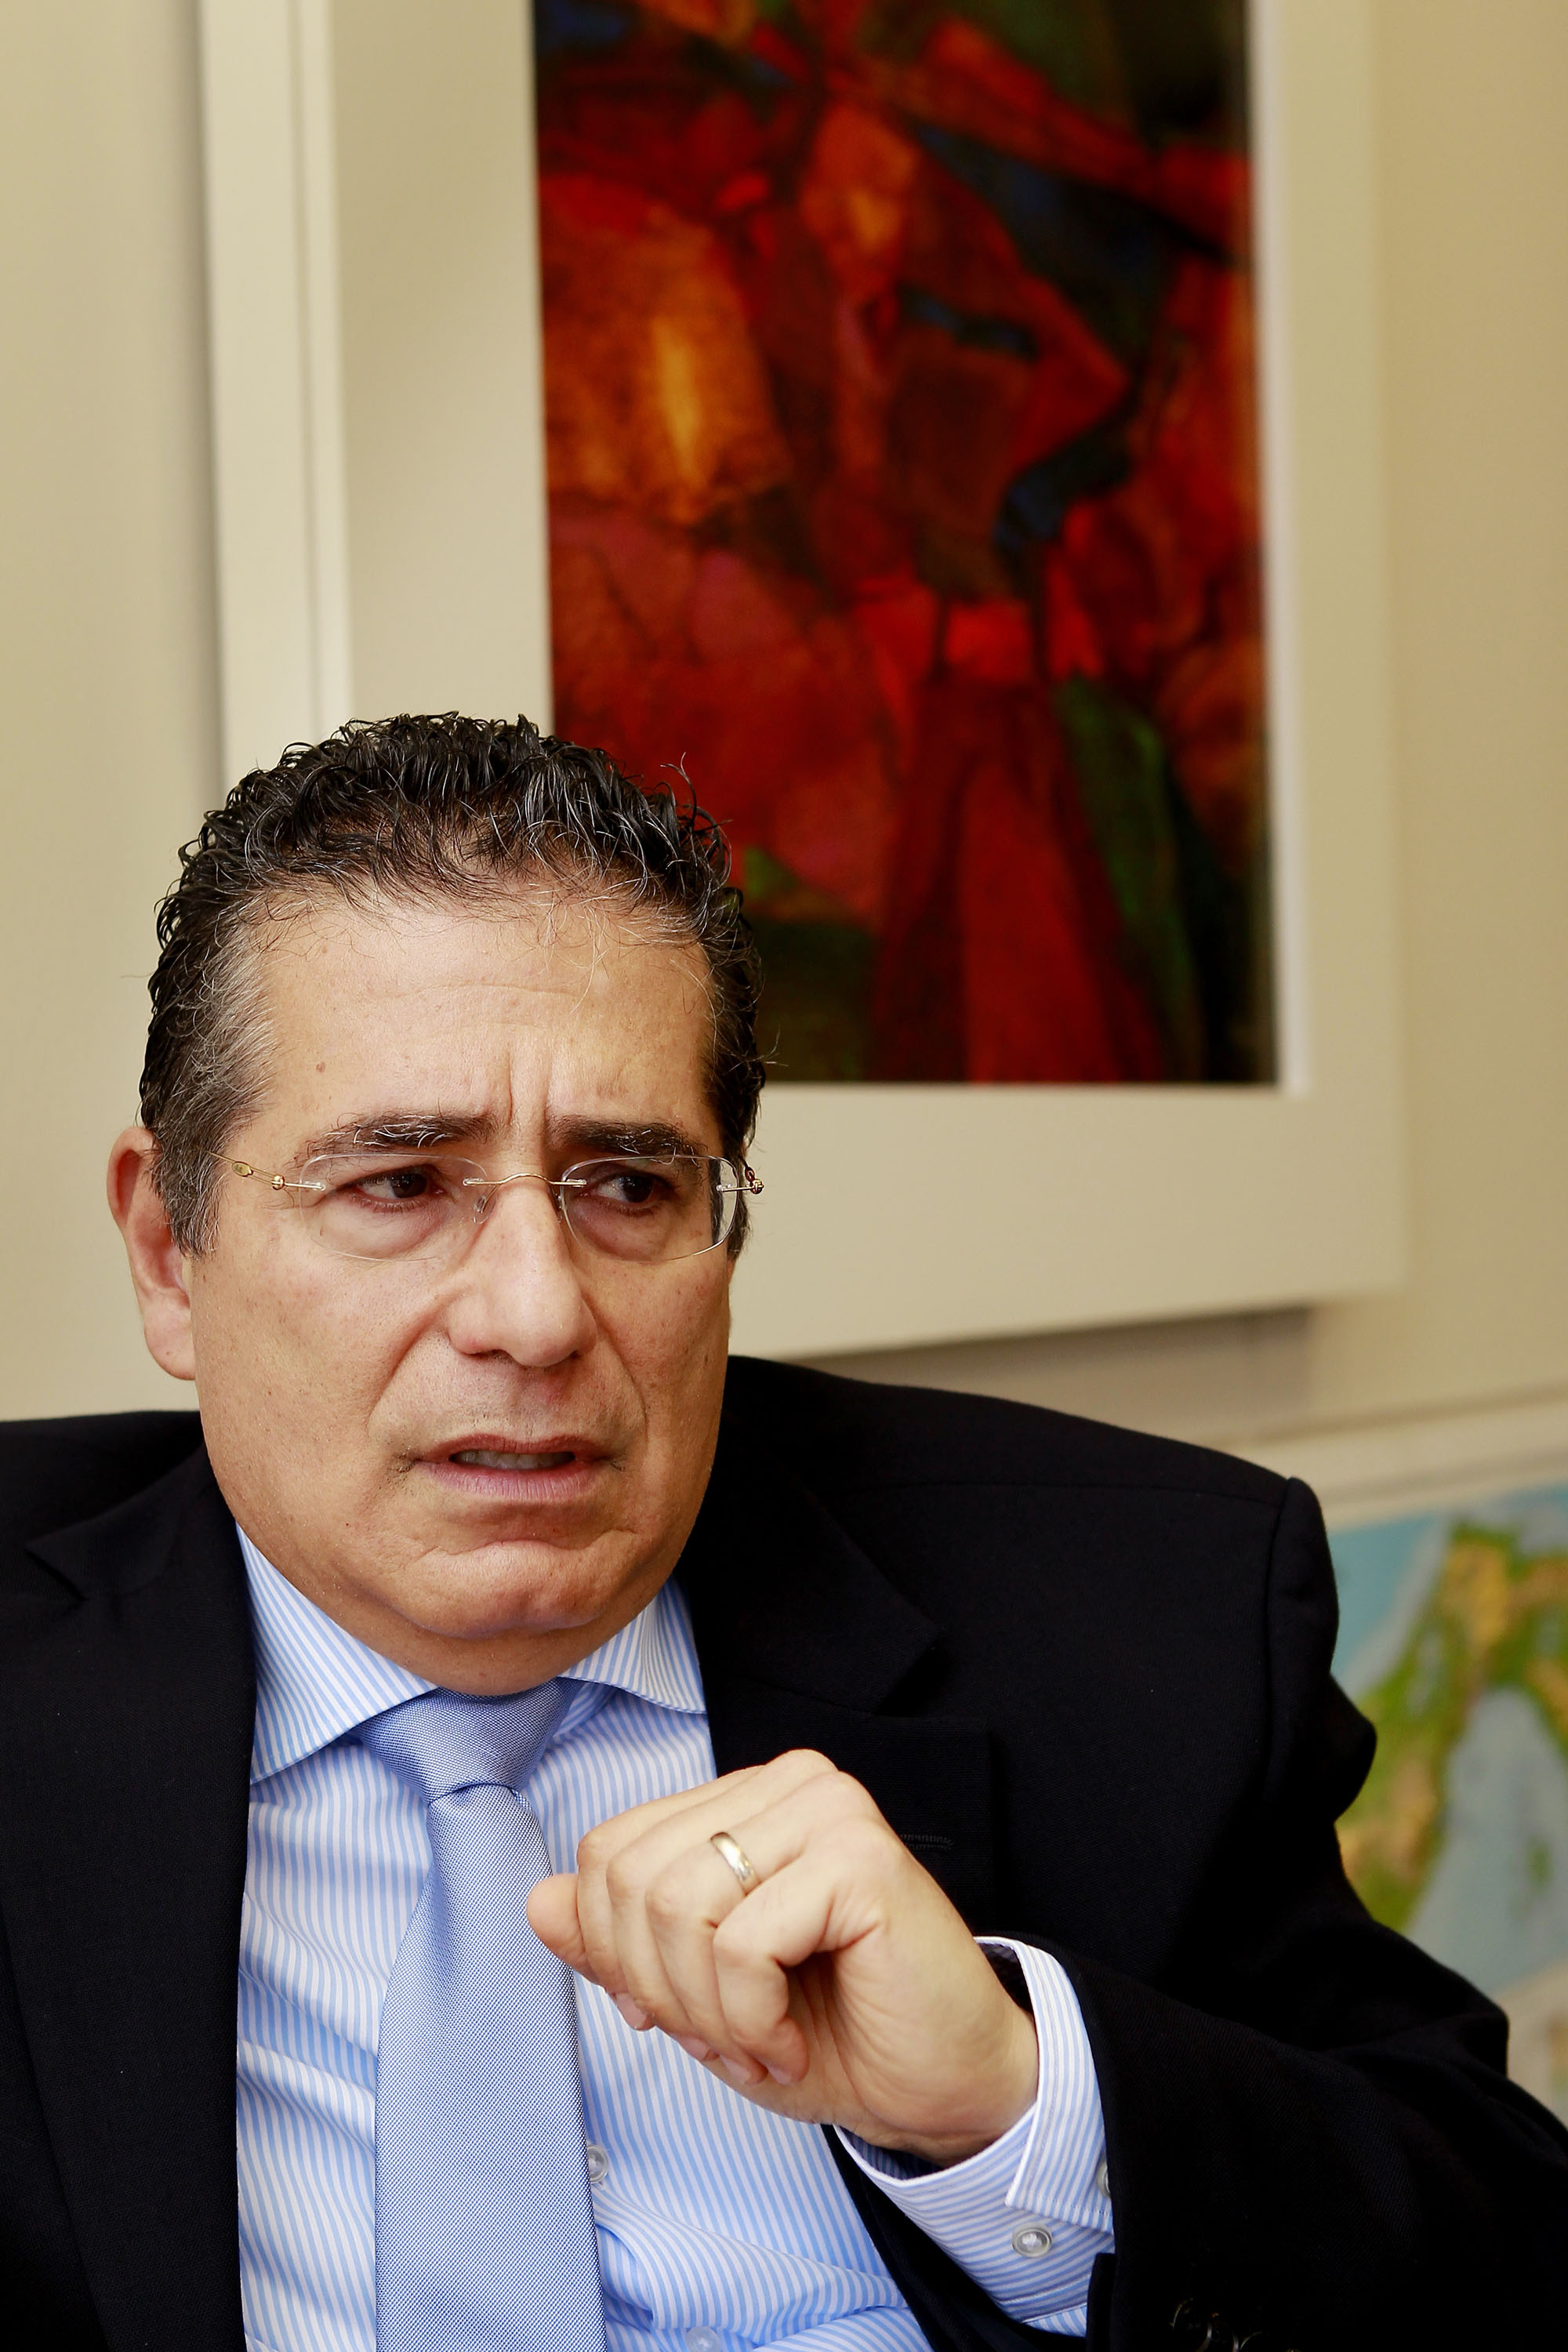 One of the co-founders of the Mossack Fonseca law firm in Panama is Ramon Fonseca Mora, seen here in a May 31, 2012 photo. // Courtesy of the International Consortium of Investigative Journalists